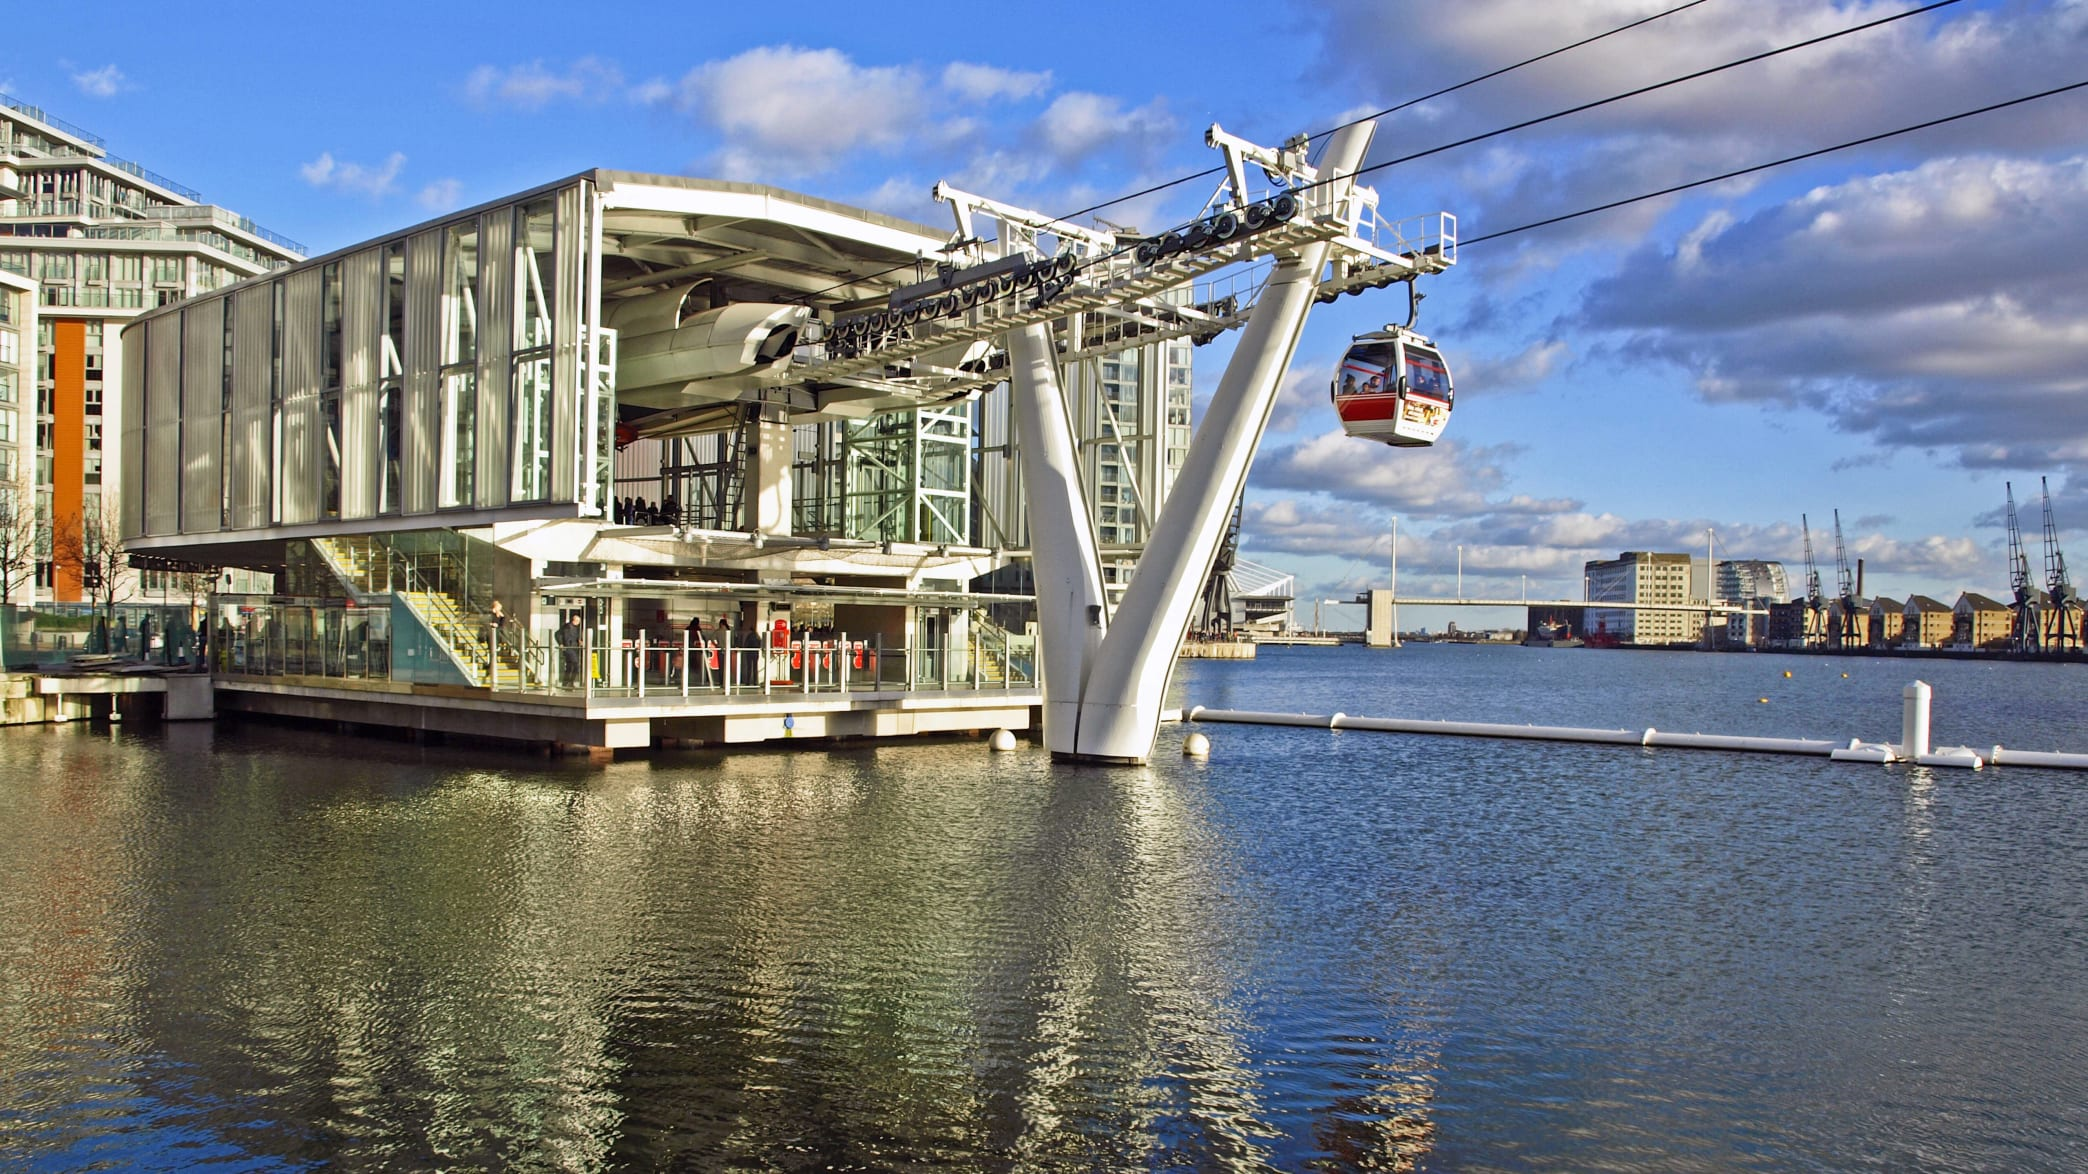 Seilbahn in London